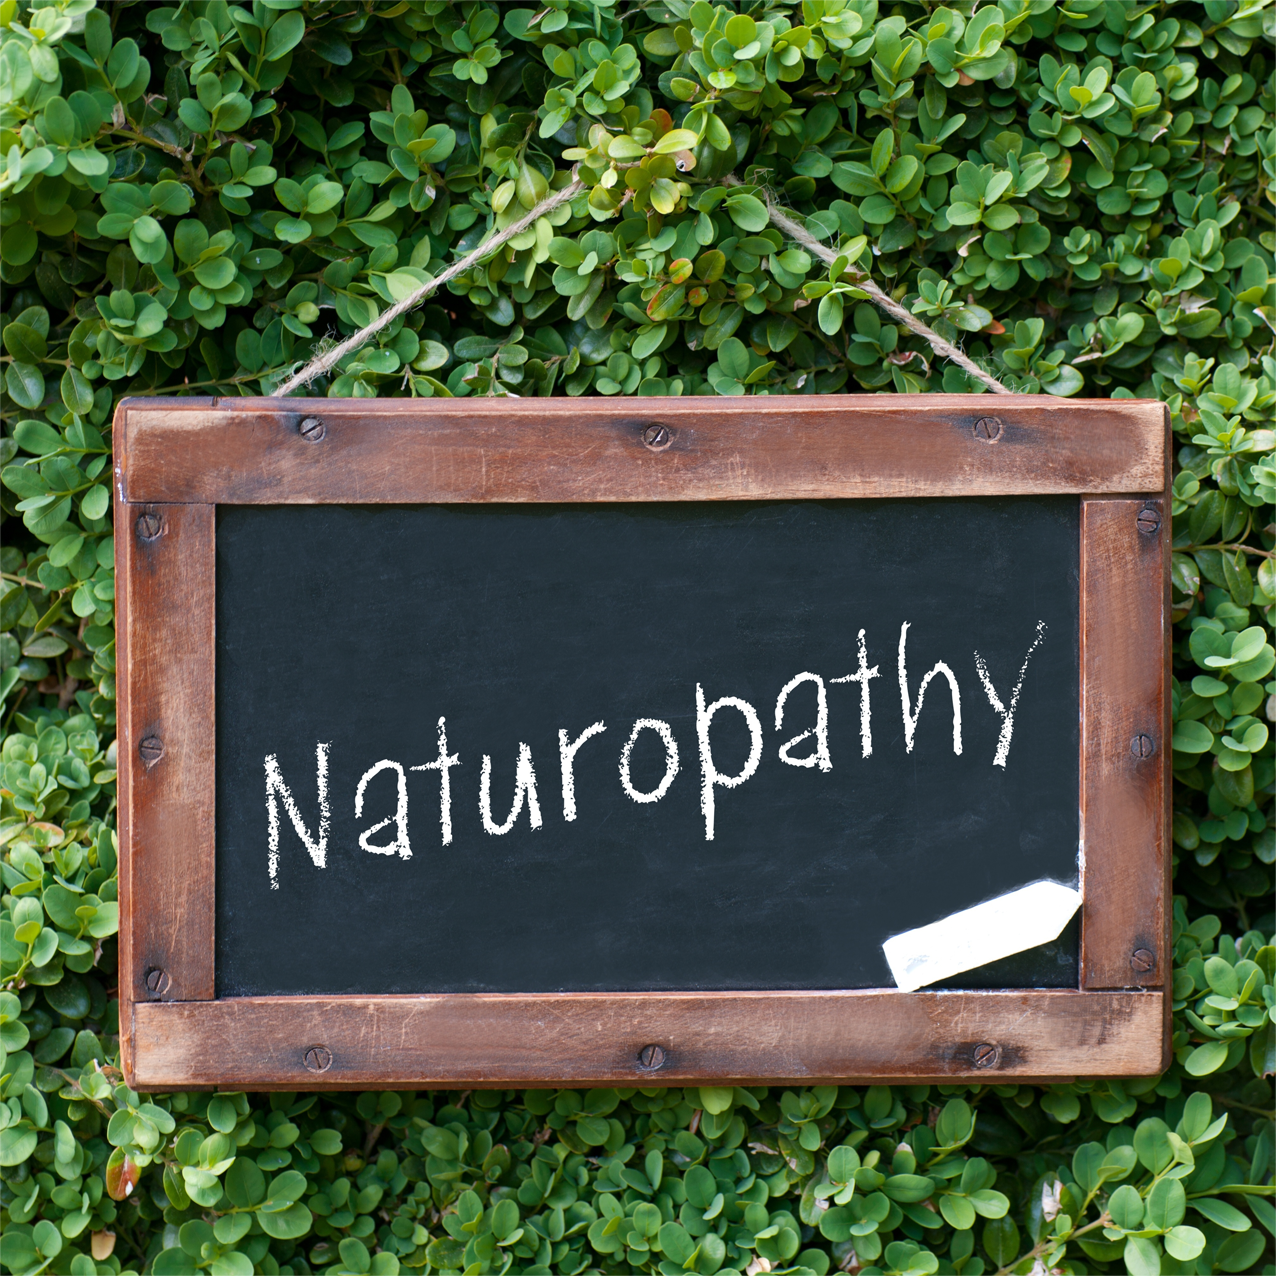 naturopathy research paper Buy naturopathy essay paper online naturopathy medicine is a system where the process of healing comes through natural means it is a holistic method where the naturopathic doctors try to diagnose an illness by endeavoring to comprehend the mind, body and spirit of the patient.